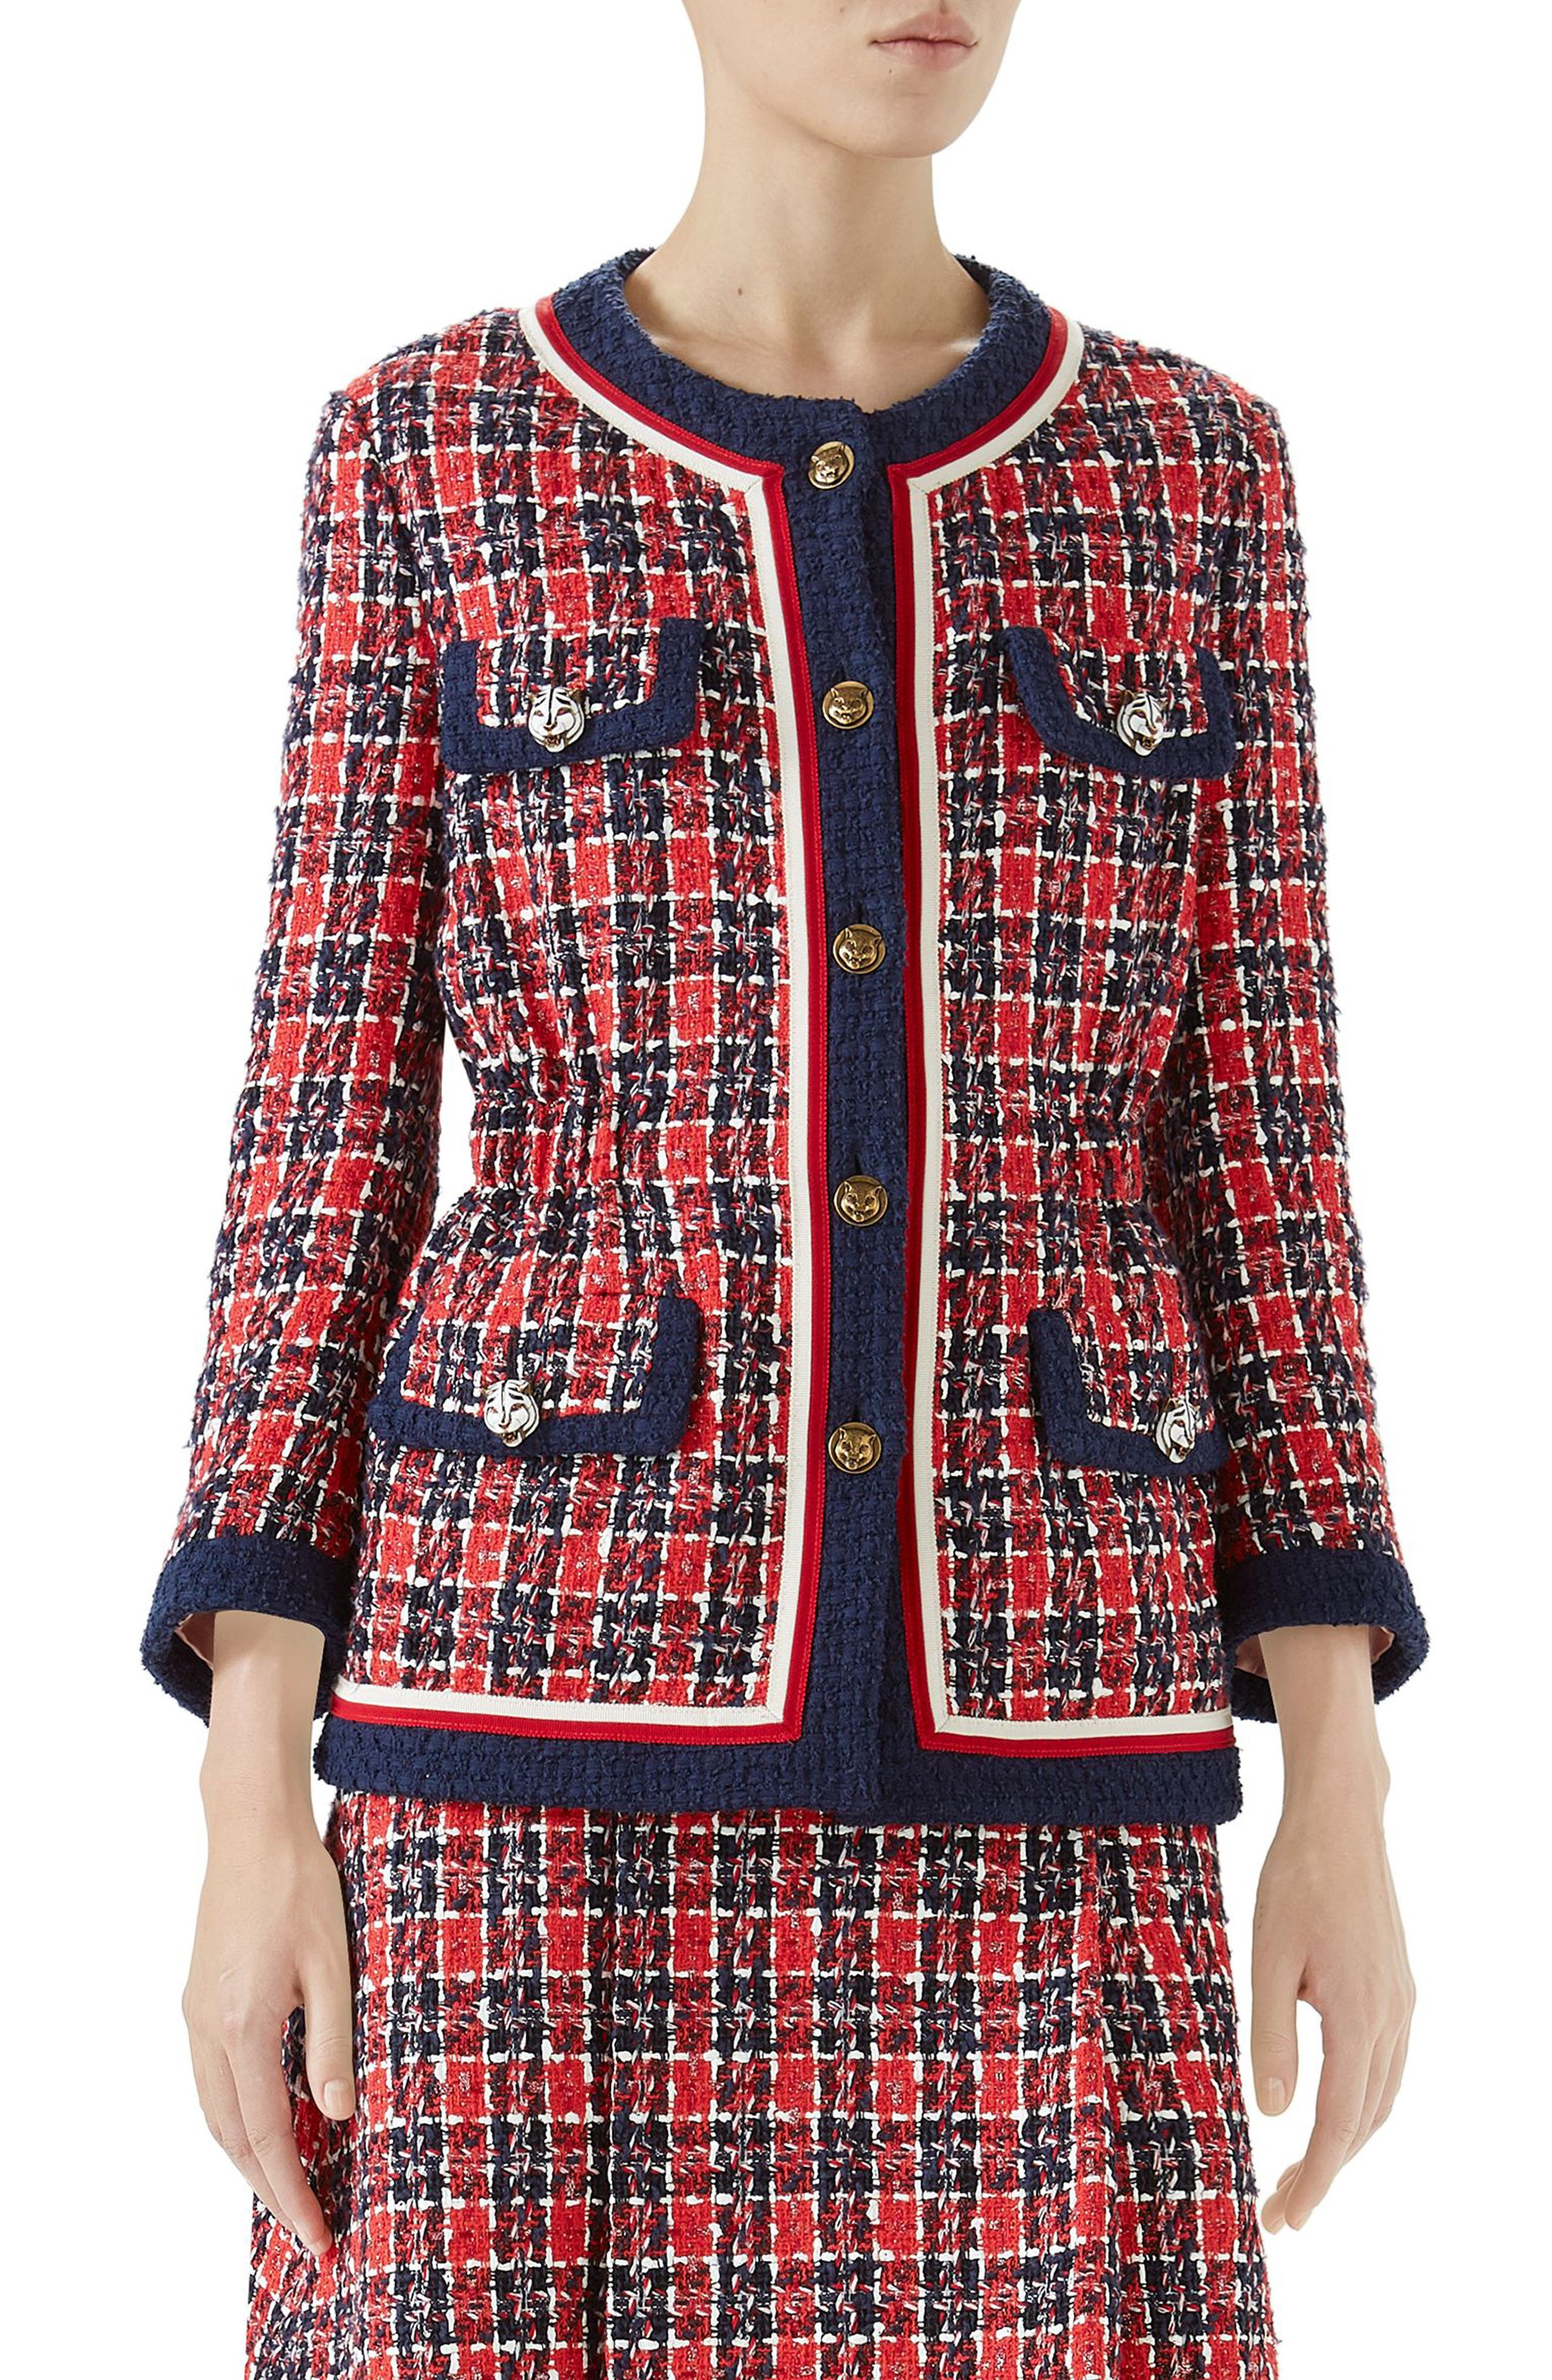 Cinch Waist Tweed Jacket,                             Main thumbnail 1, color,                             ROYAL BLUE/ RED